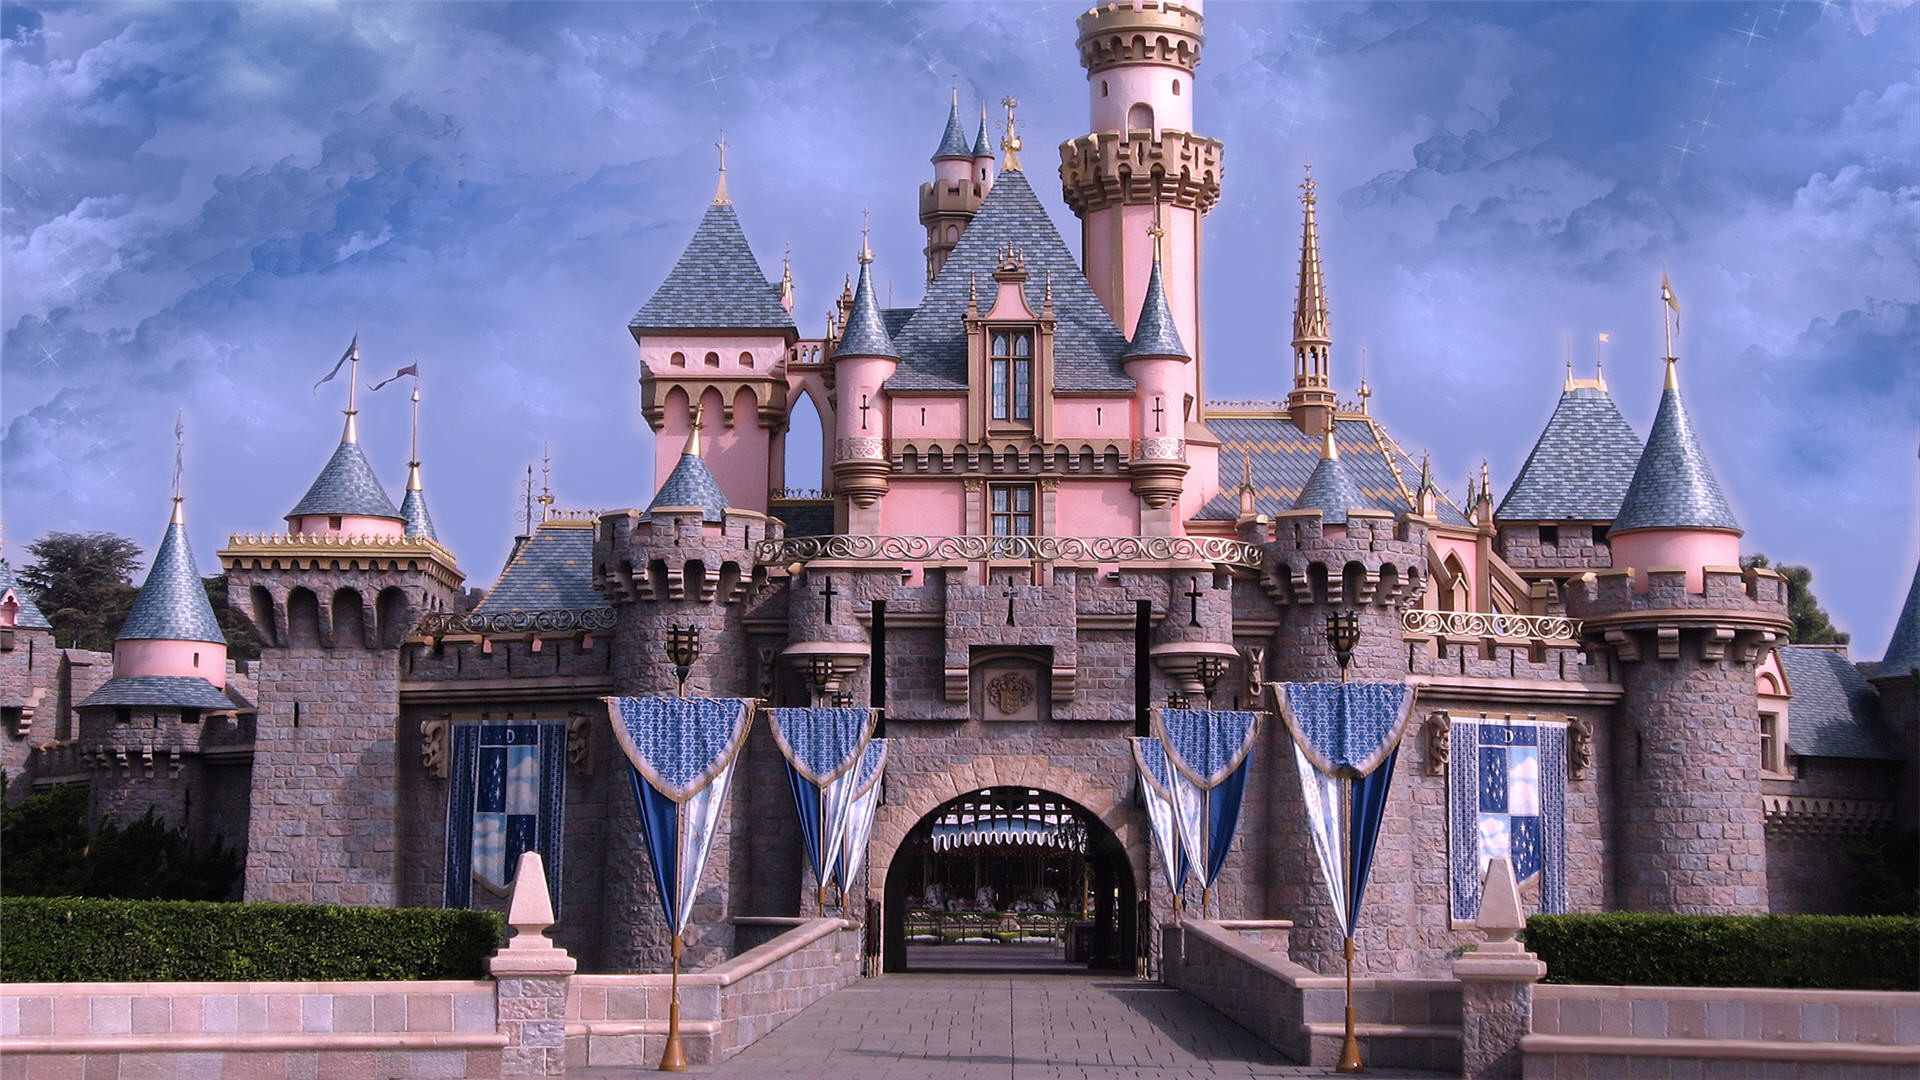 Castle Images Collection For Free Download